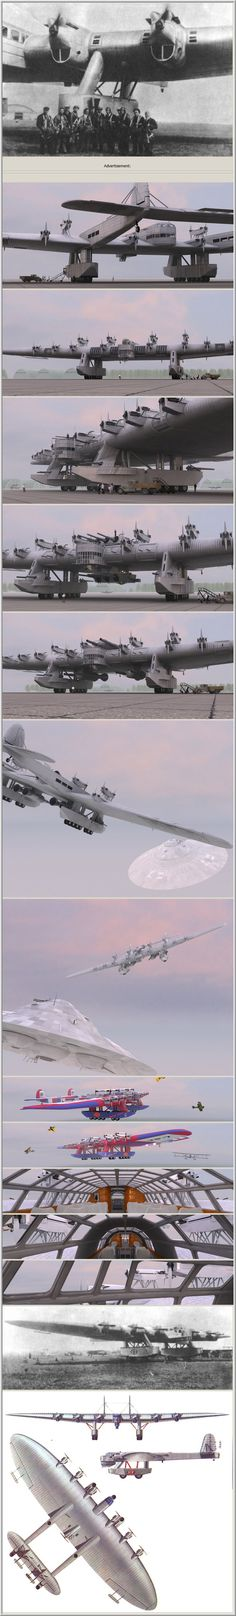 Russian Flying Fortress